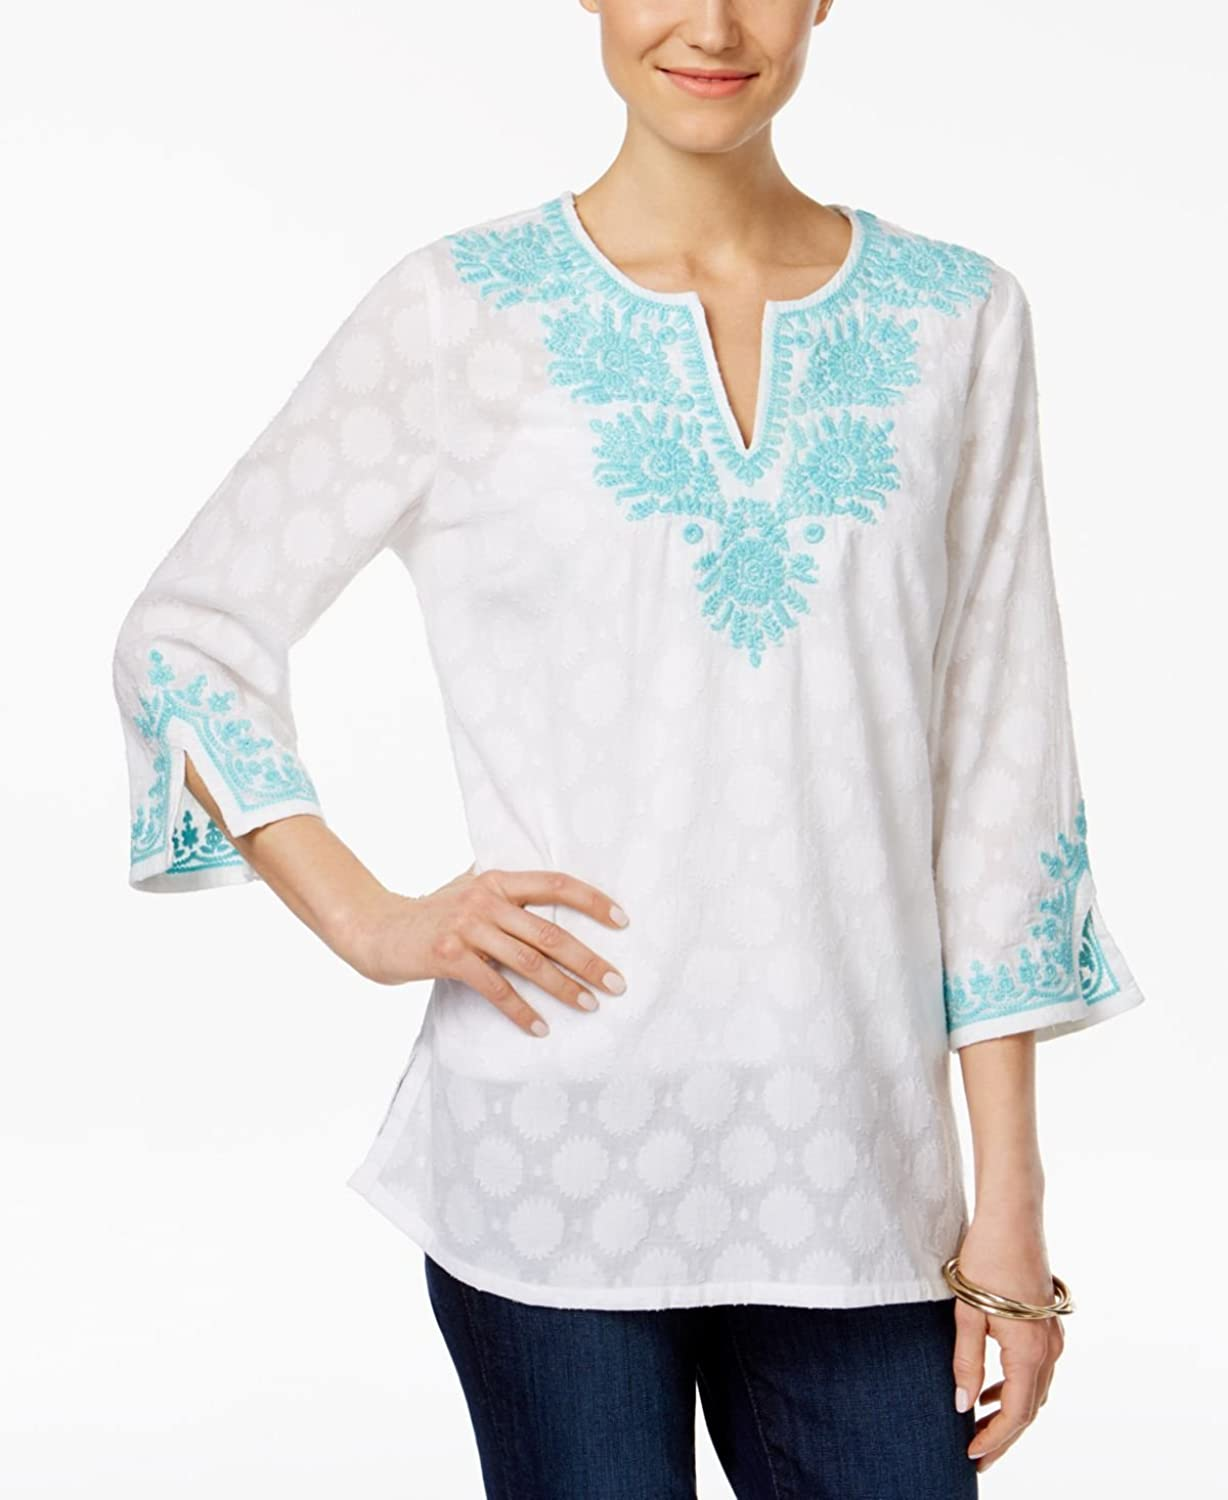 Charter Club Womens Embroidered Tunic Blouse